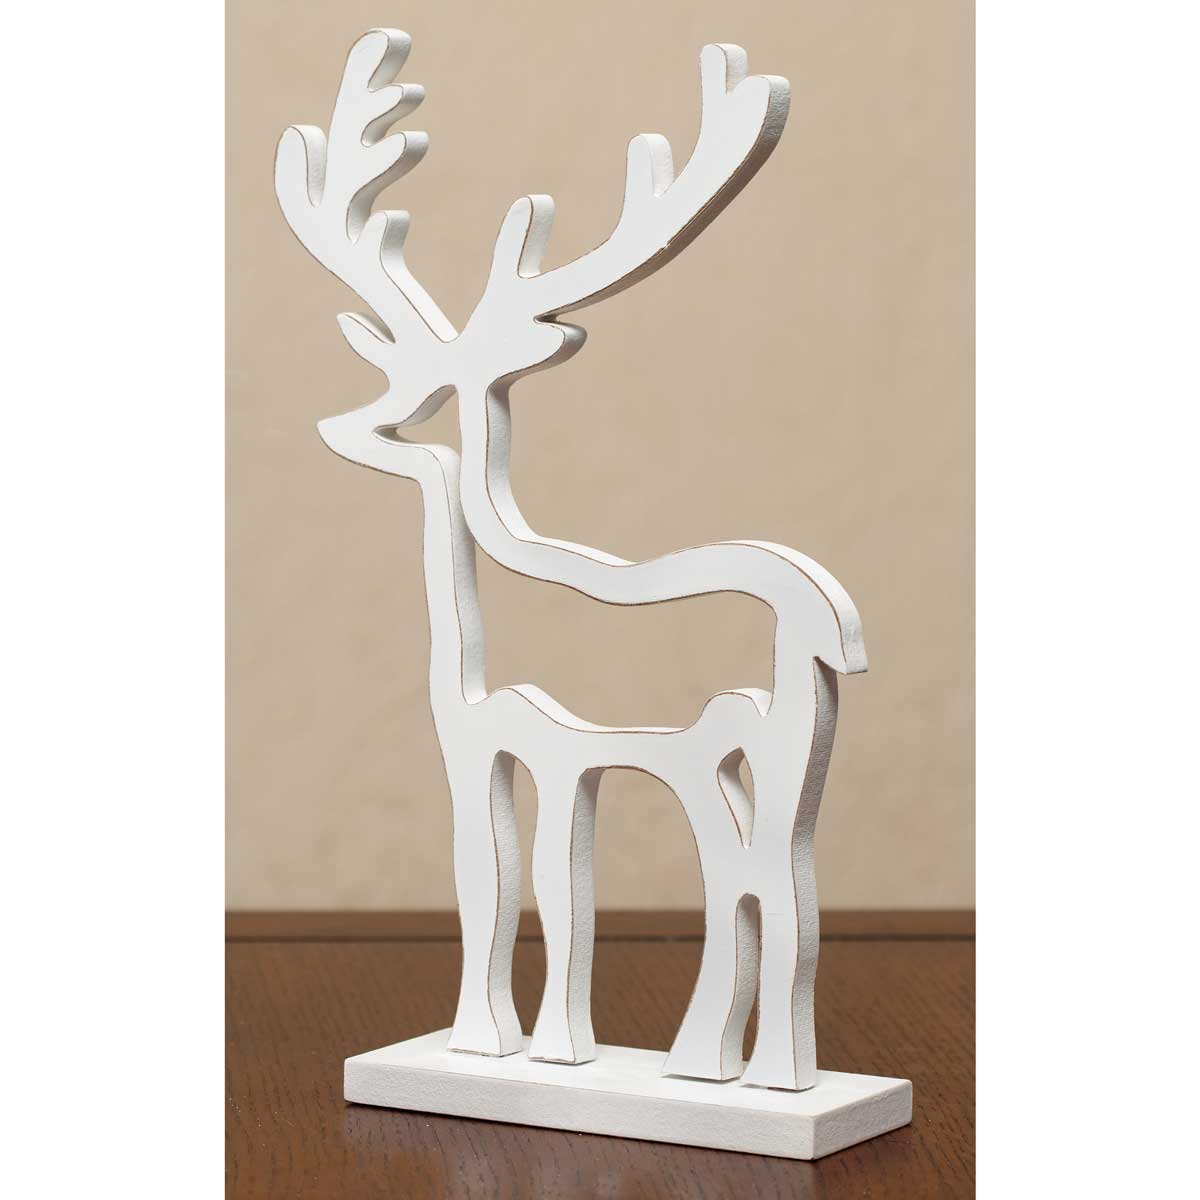 WOOD CUTOUT REINDEER 12""